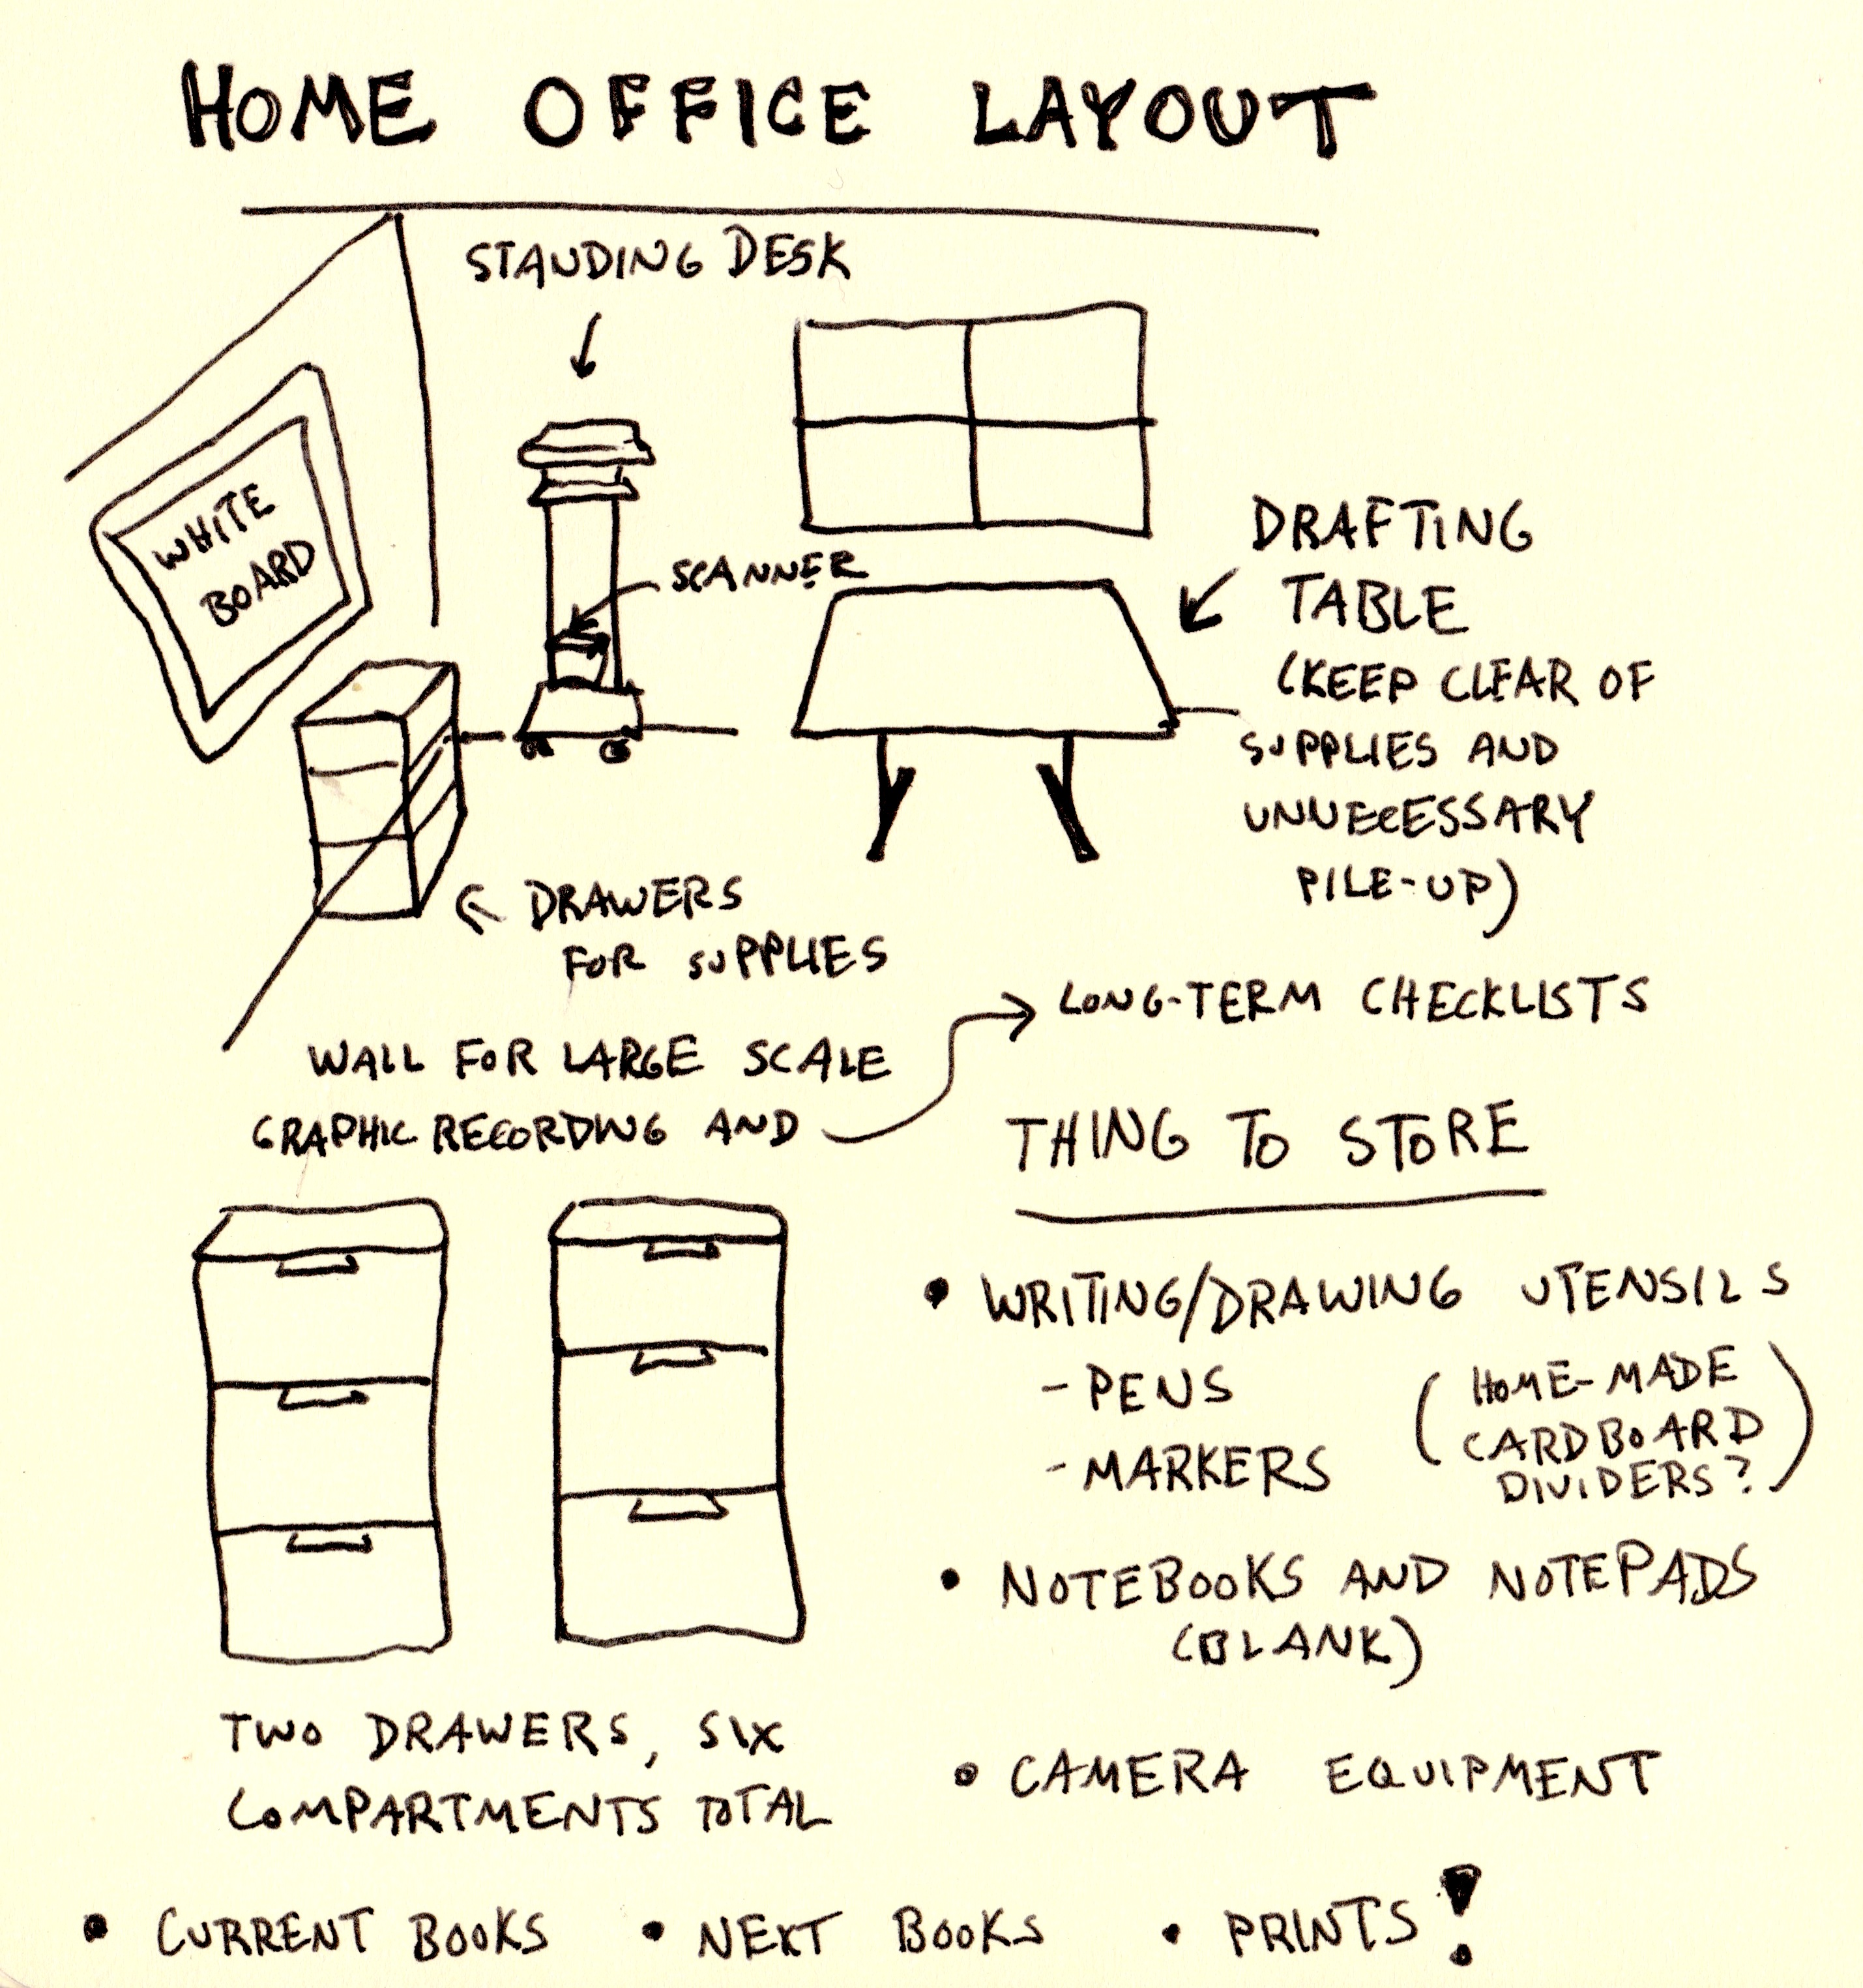 design home office layout home 2013 6 10 home office layout aboutmyhome home office design